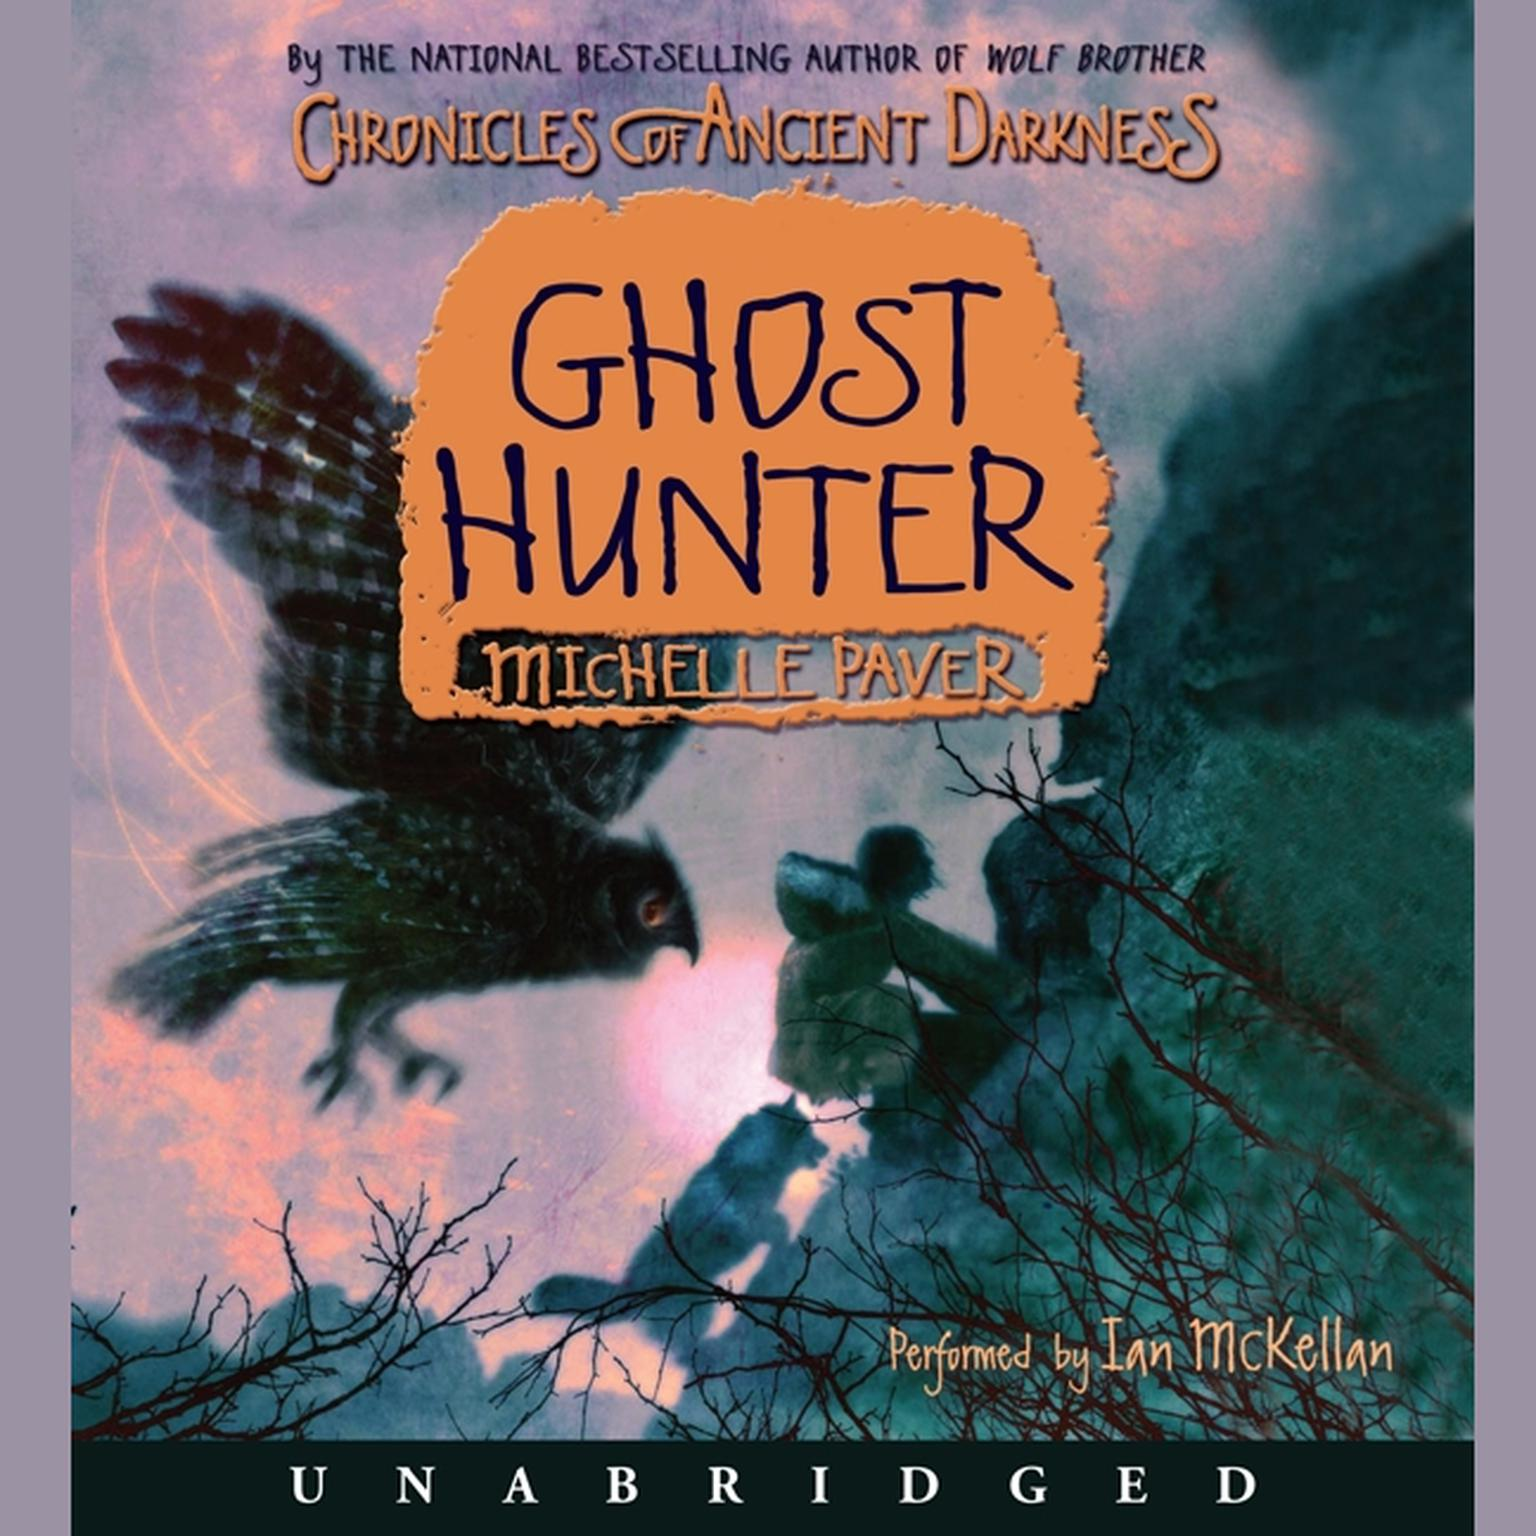 Printable Chronicles of Ancient Darkness #6: Ghost Hunter Audiobook Cover Art